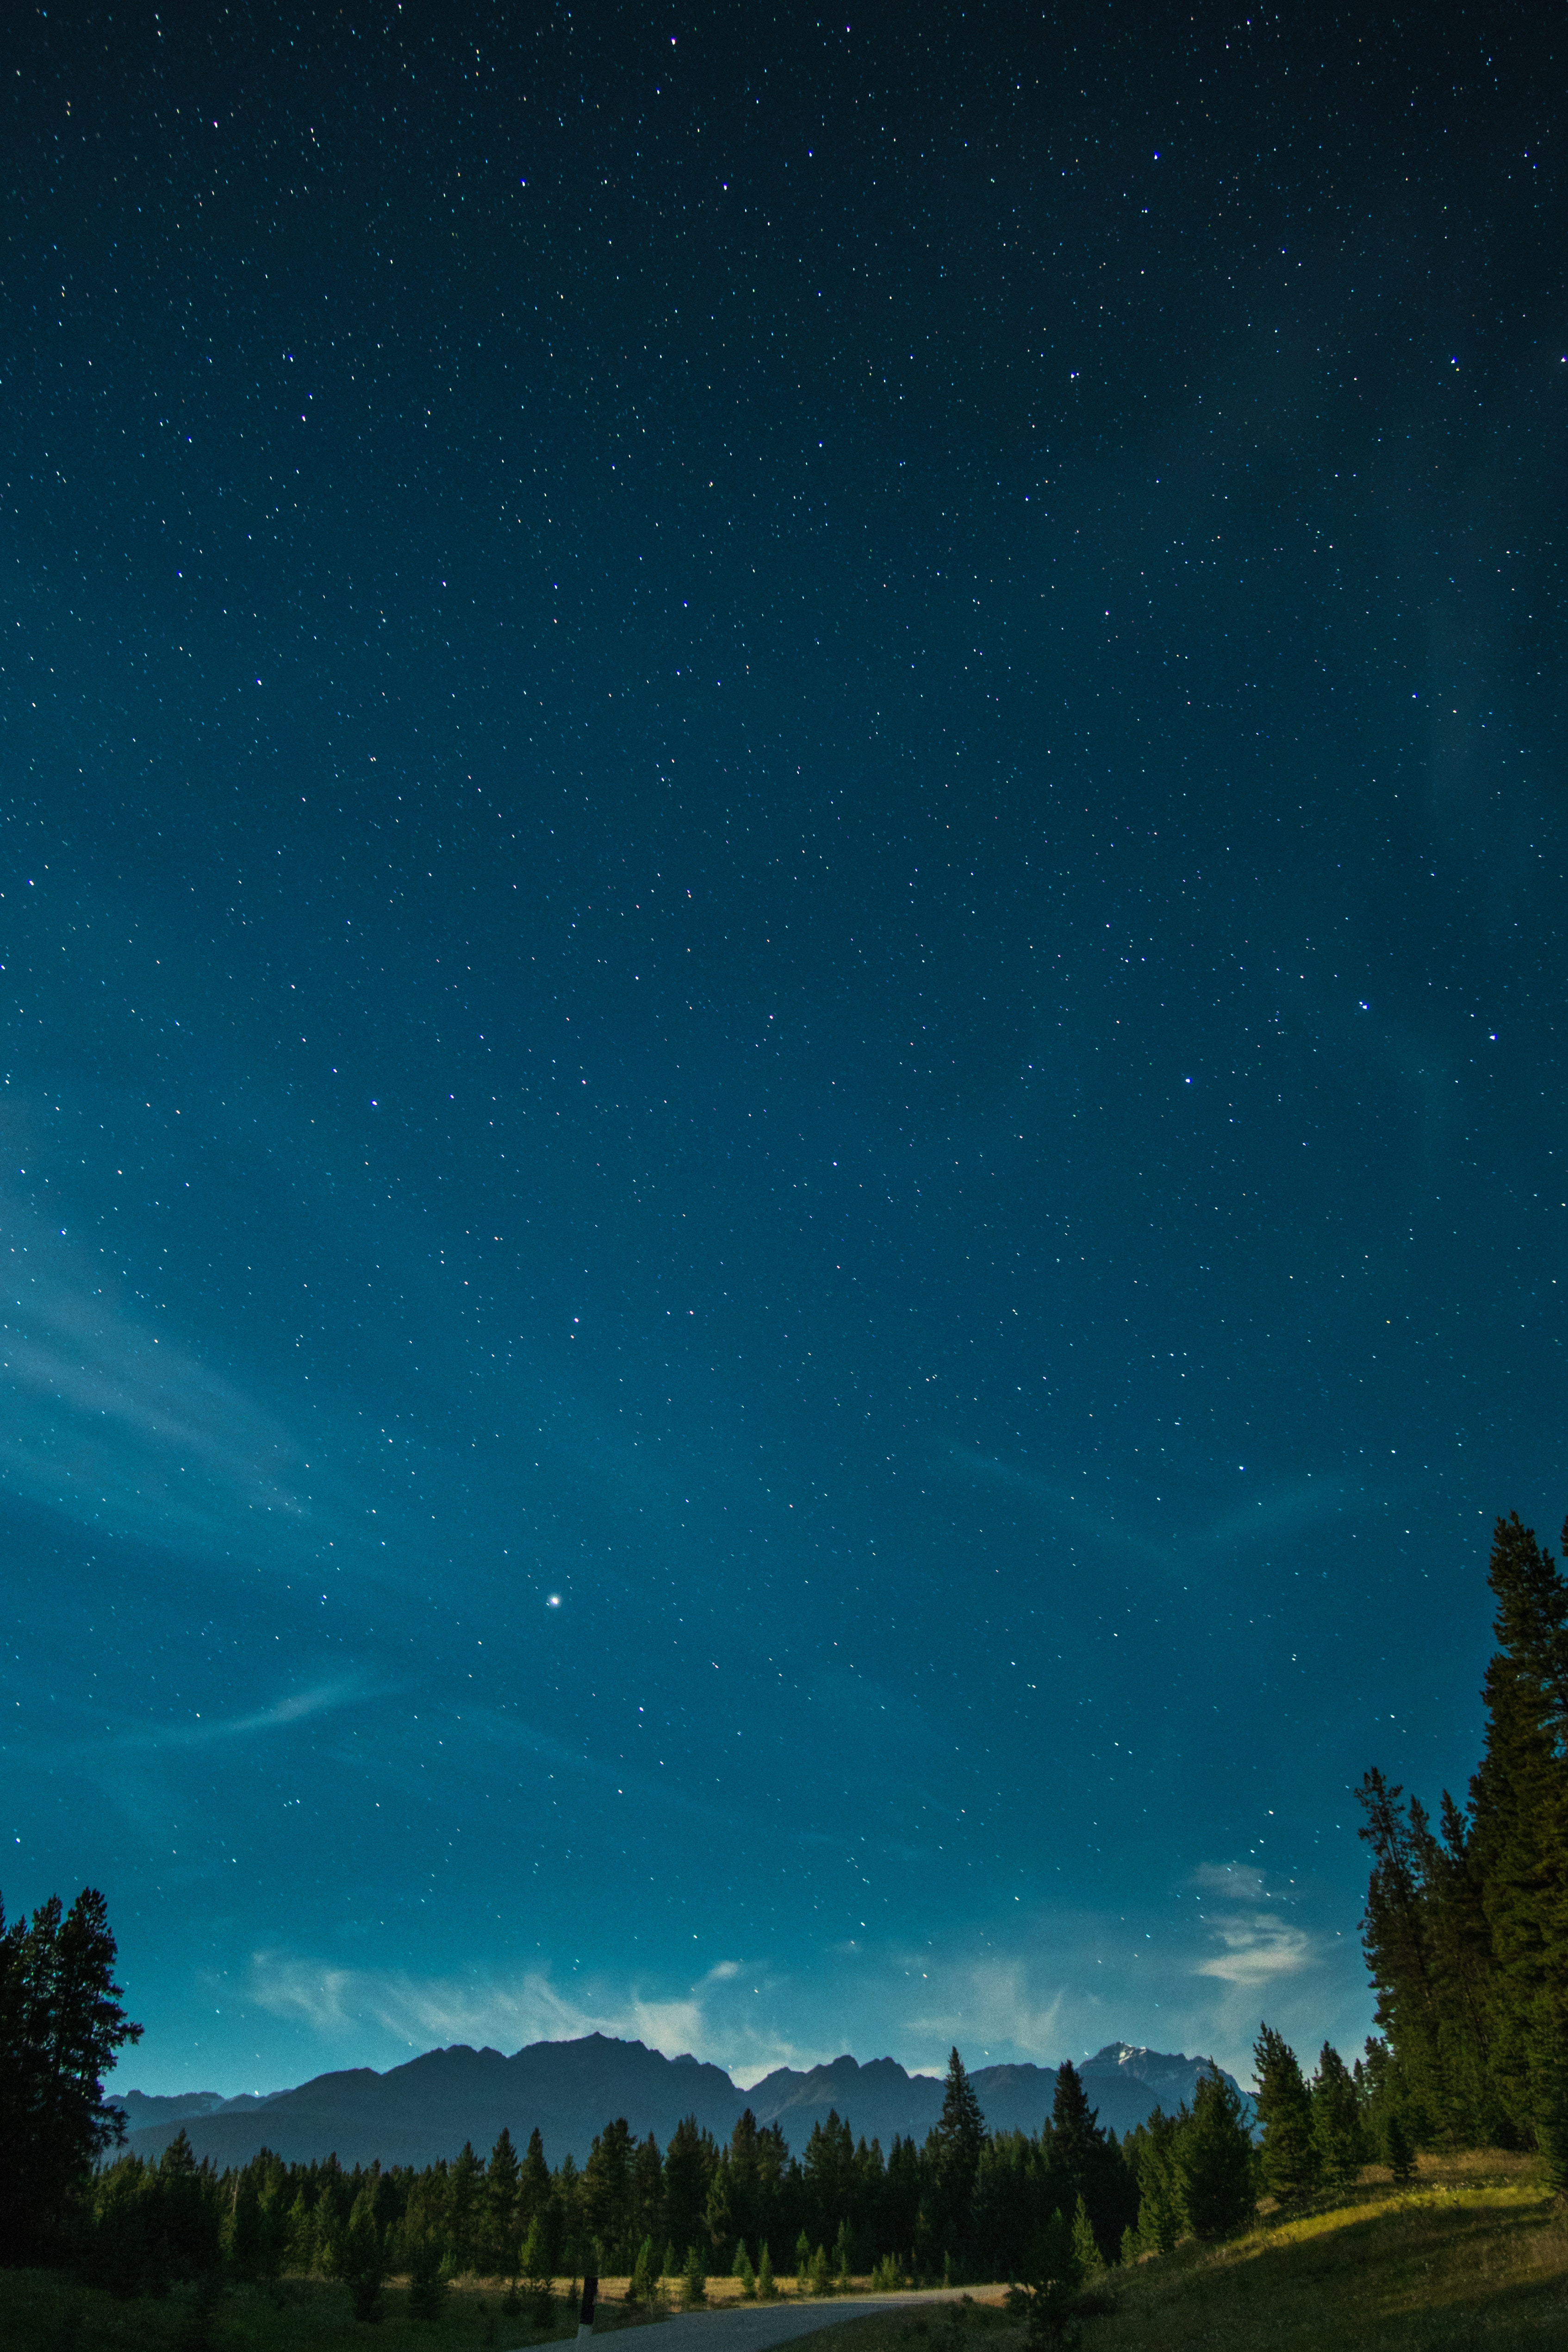 86958 download wallpaper Starry Sky, Nature, Trees, Mountains, Night screensavers and pictures for free